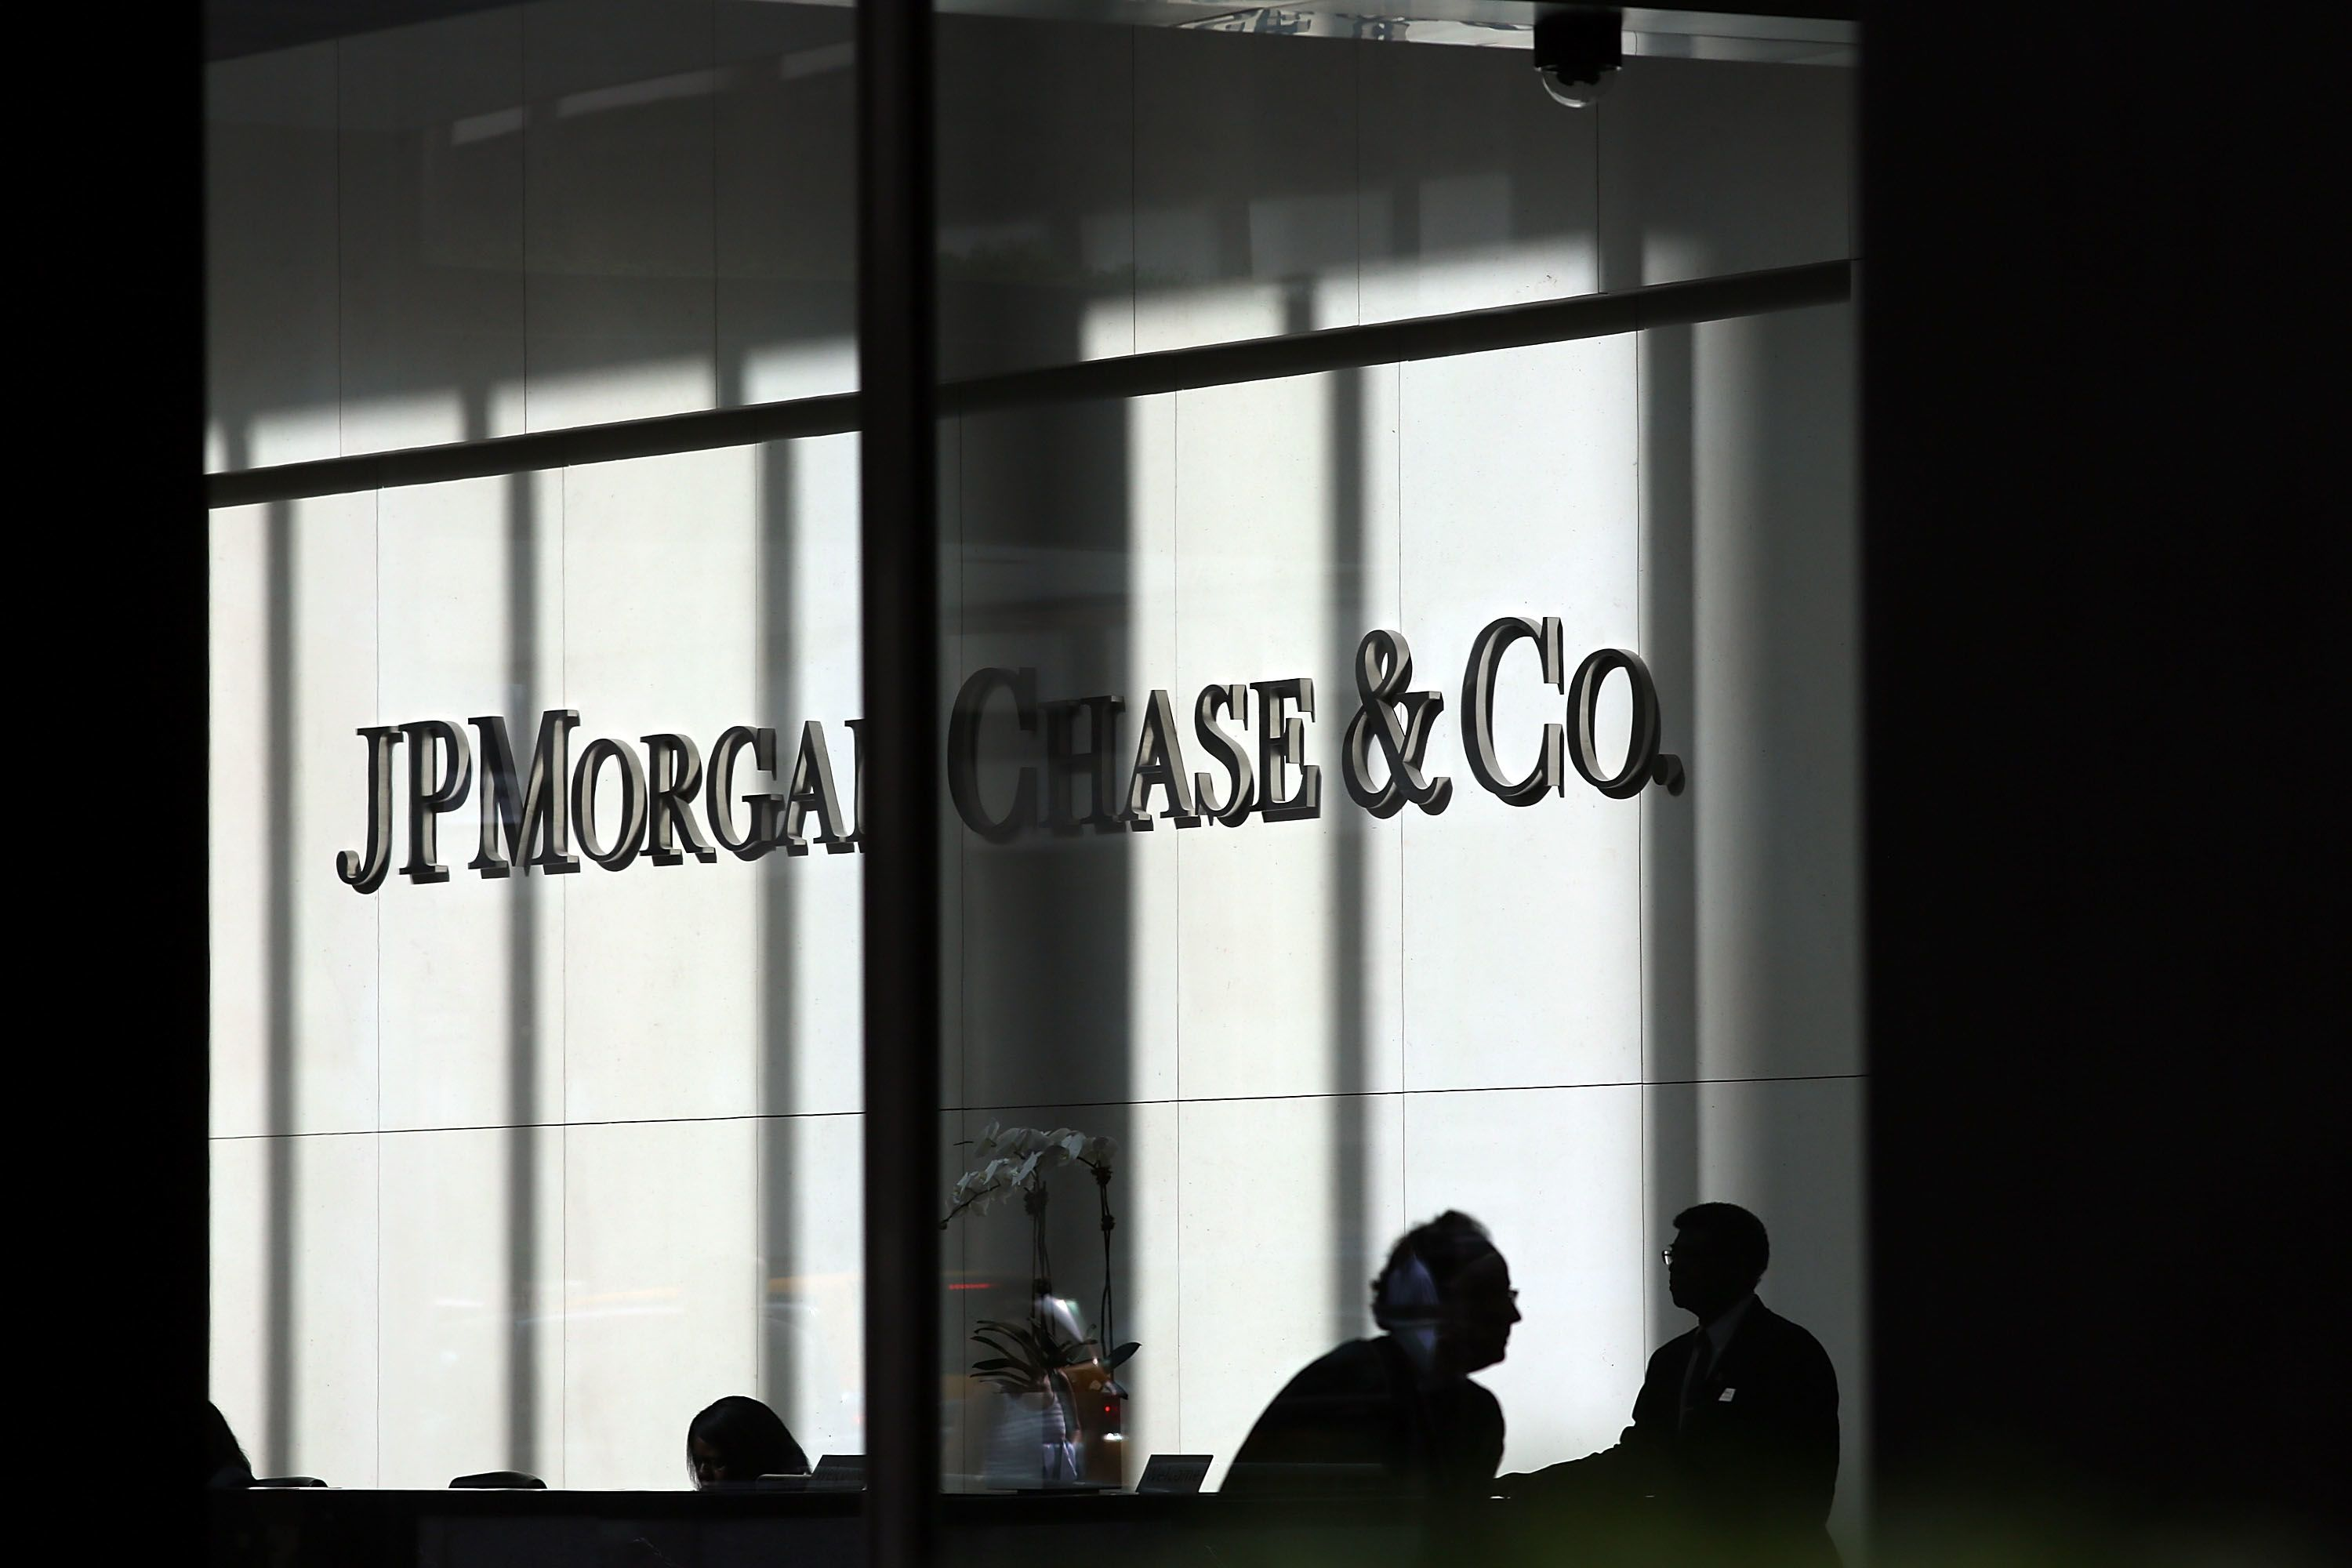 Sentencing of ex-JP Morgan Chase metals trader delayed as probe continues